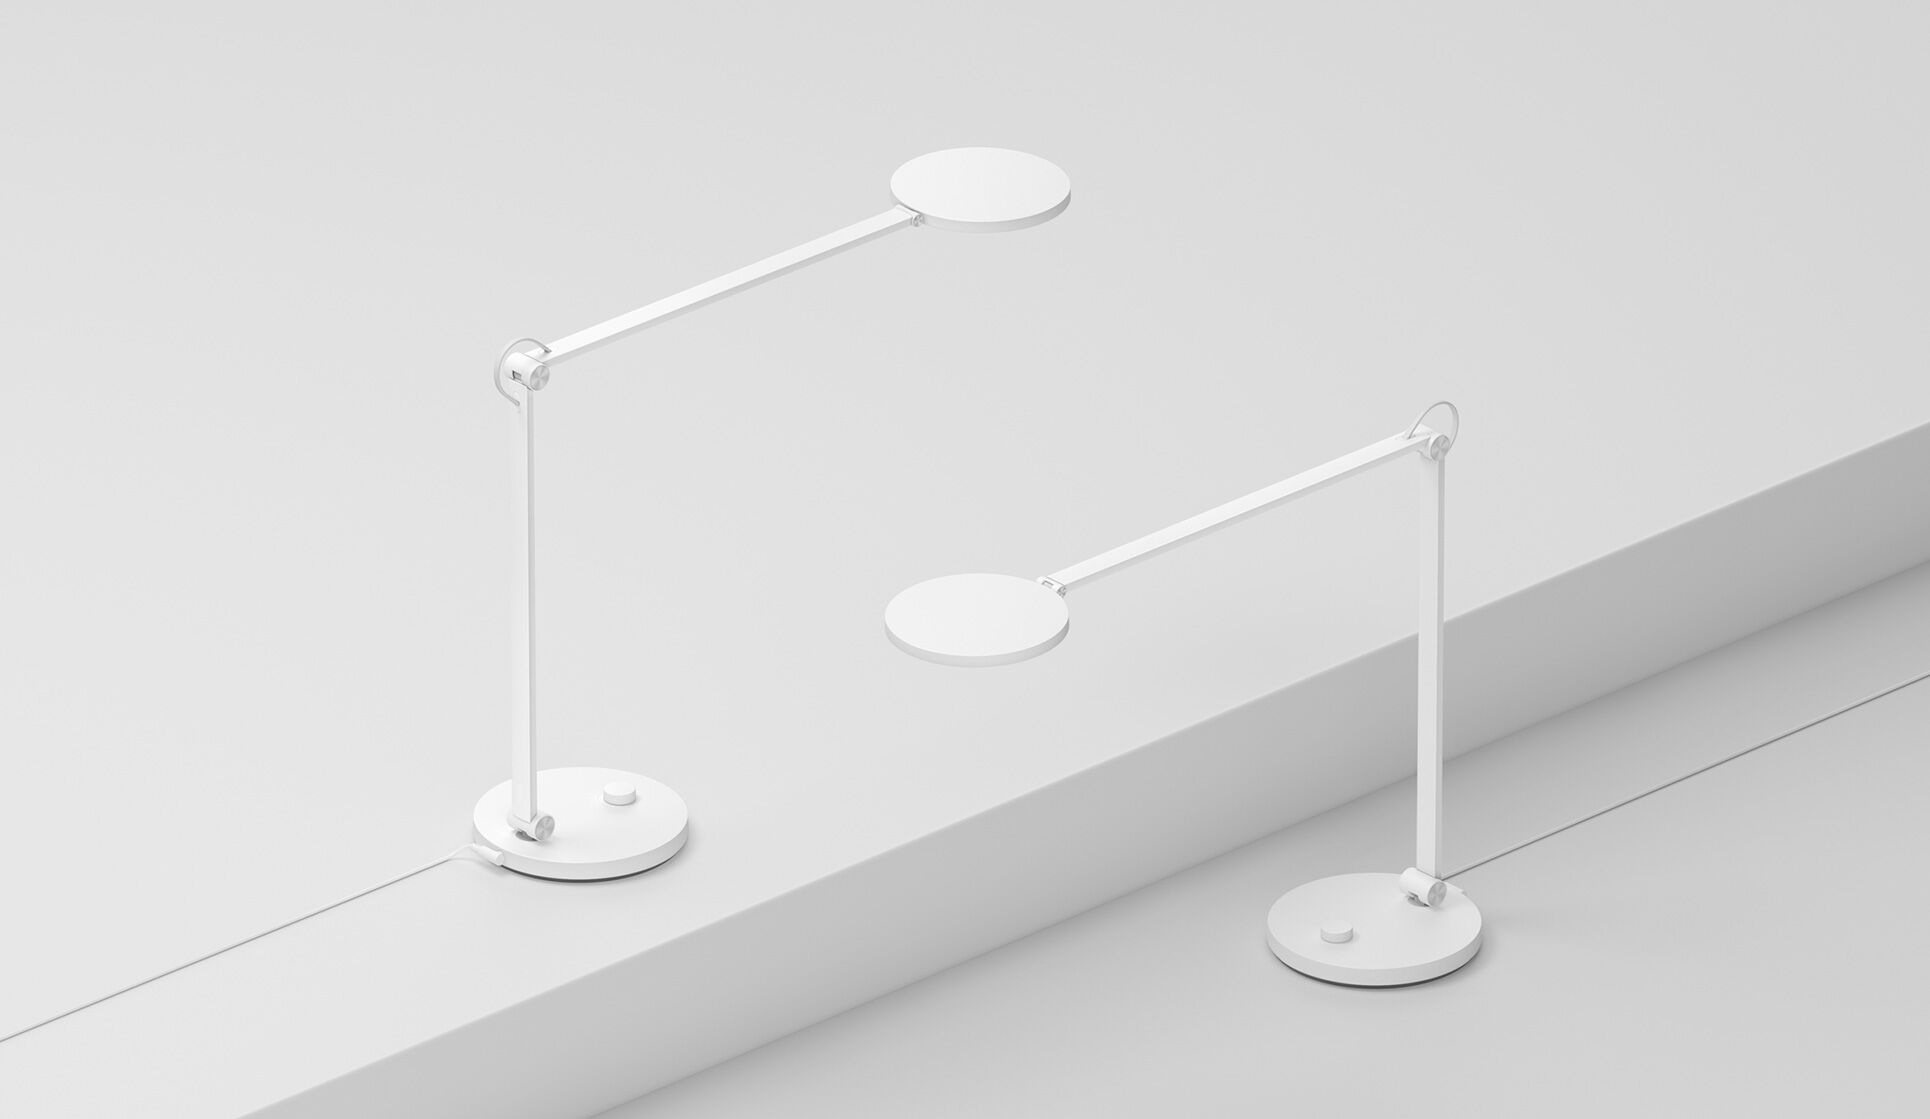 mi-smart-led-desk-lamp-pro-t08